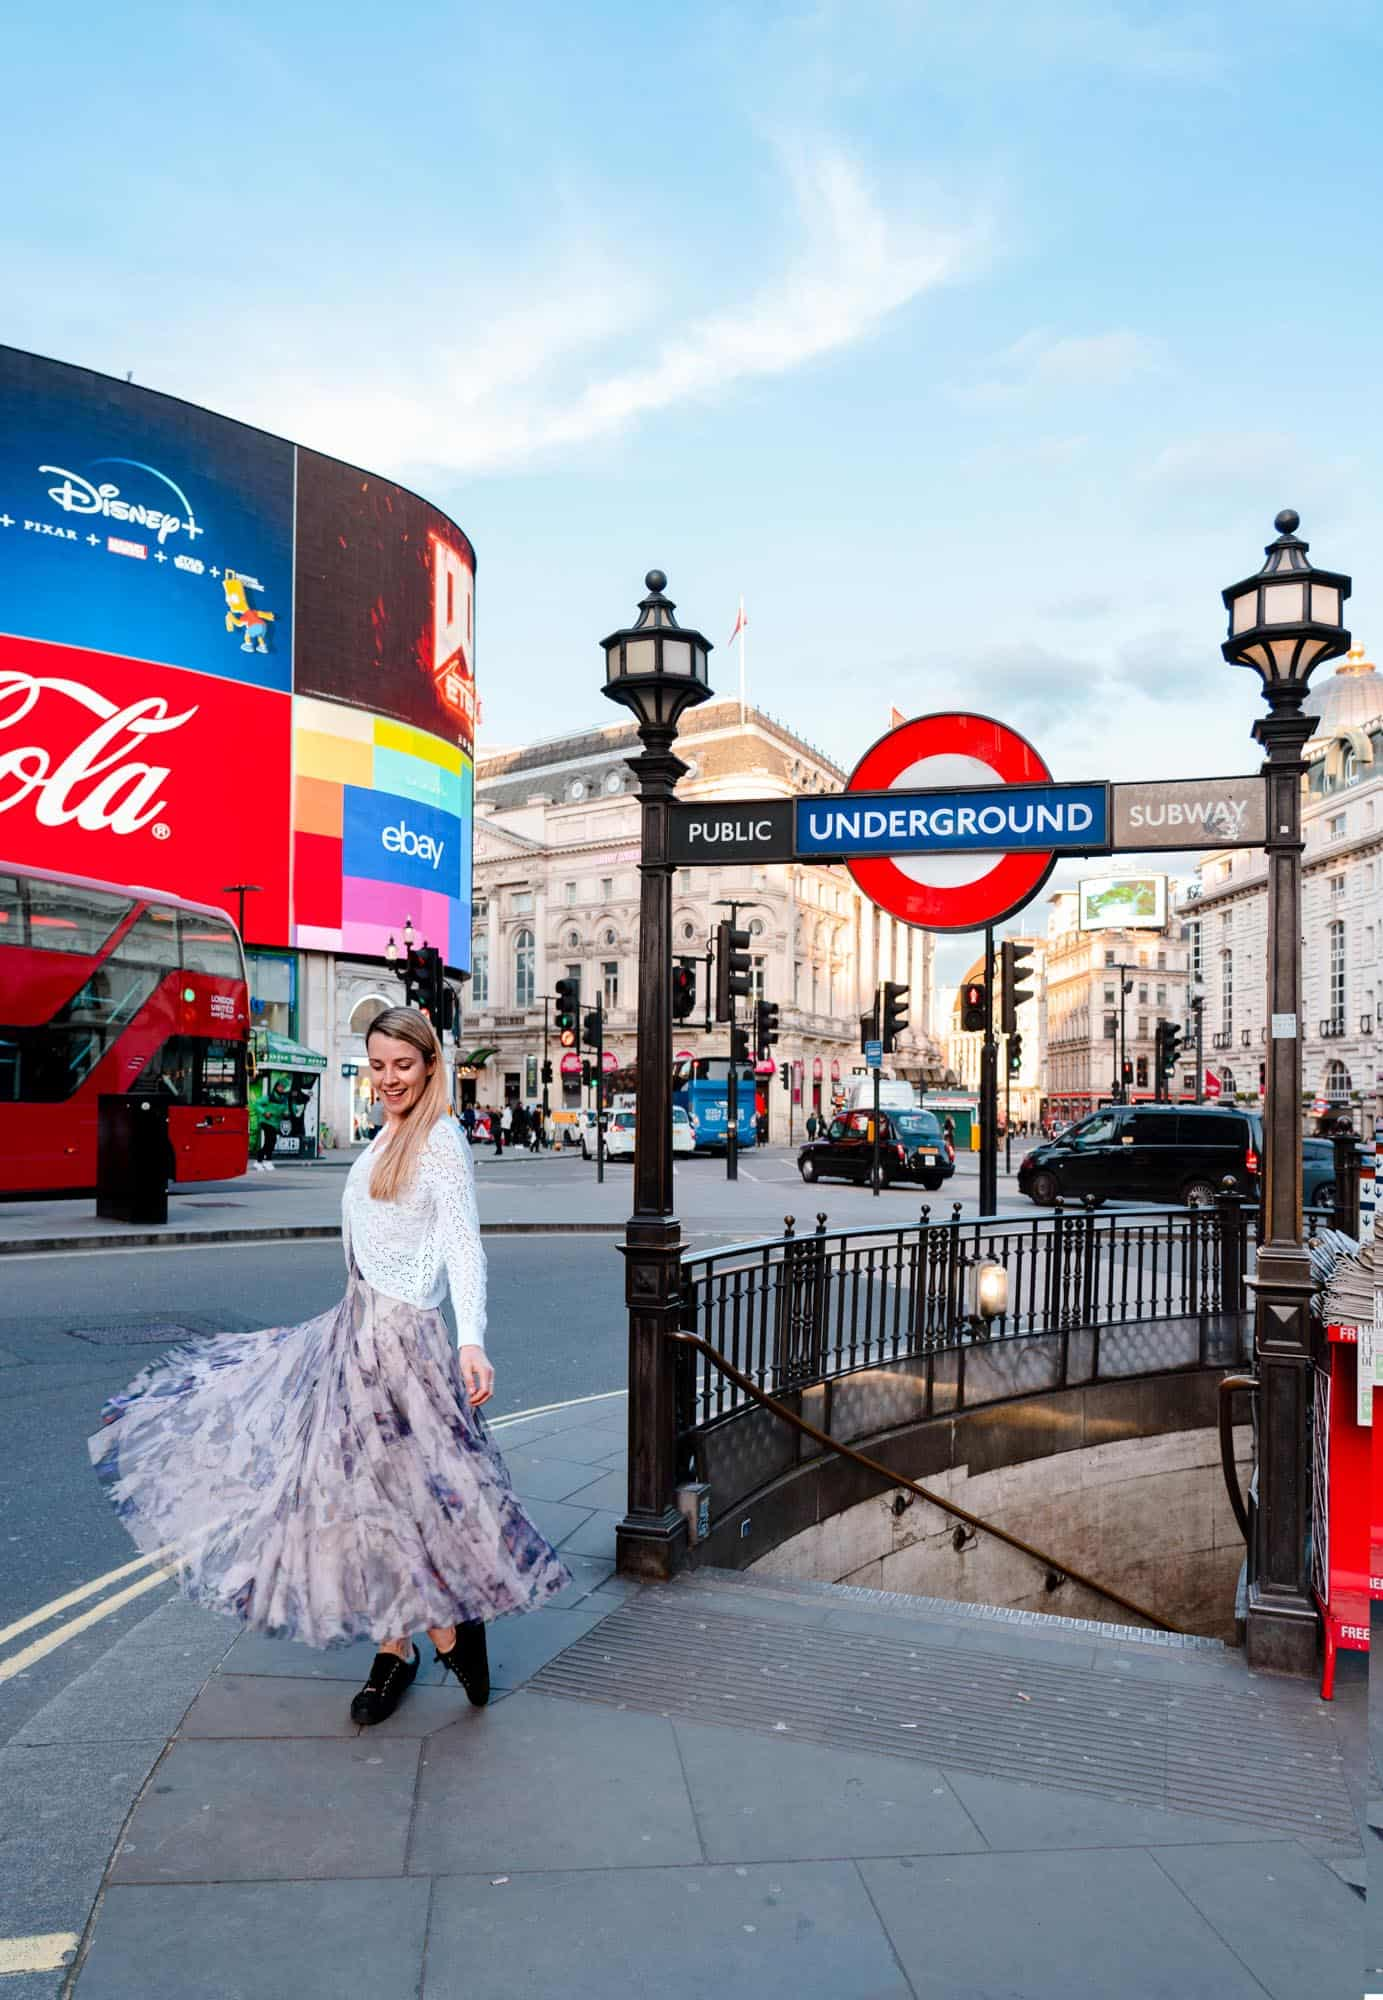 Piccadilly Circus tube station and ad screens are a famous landmark in London